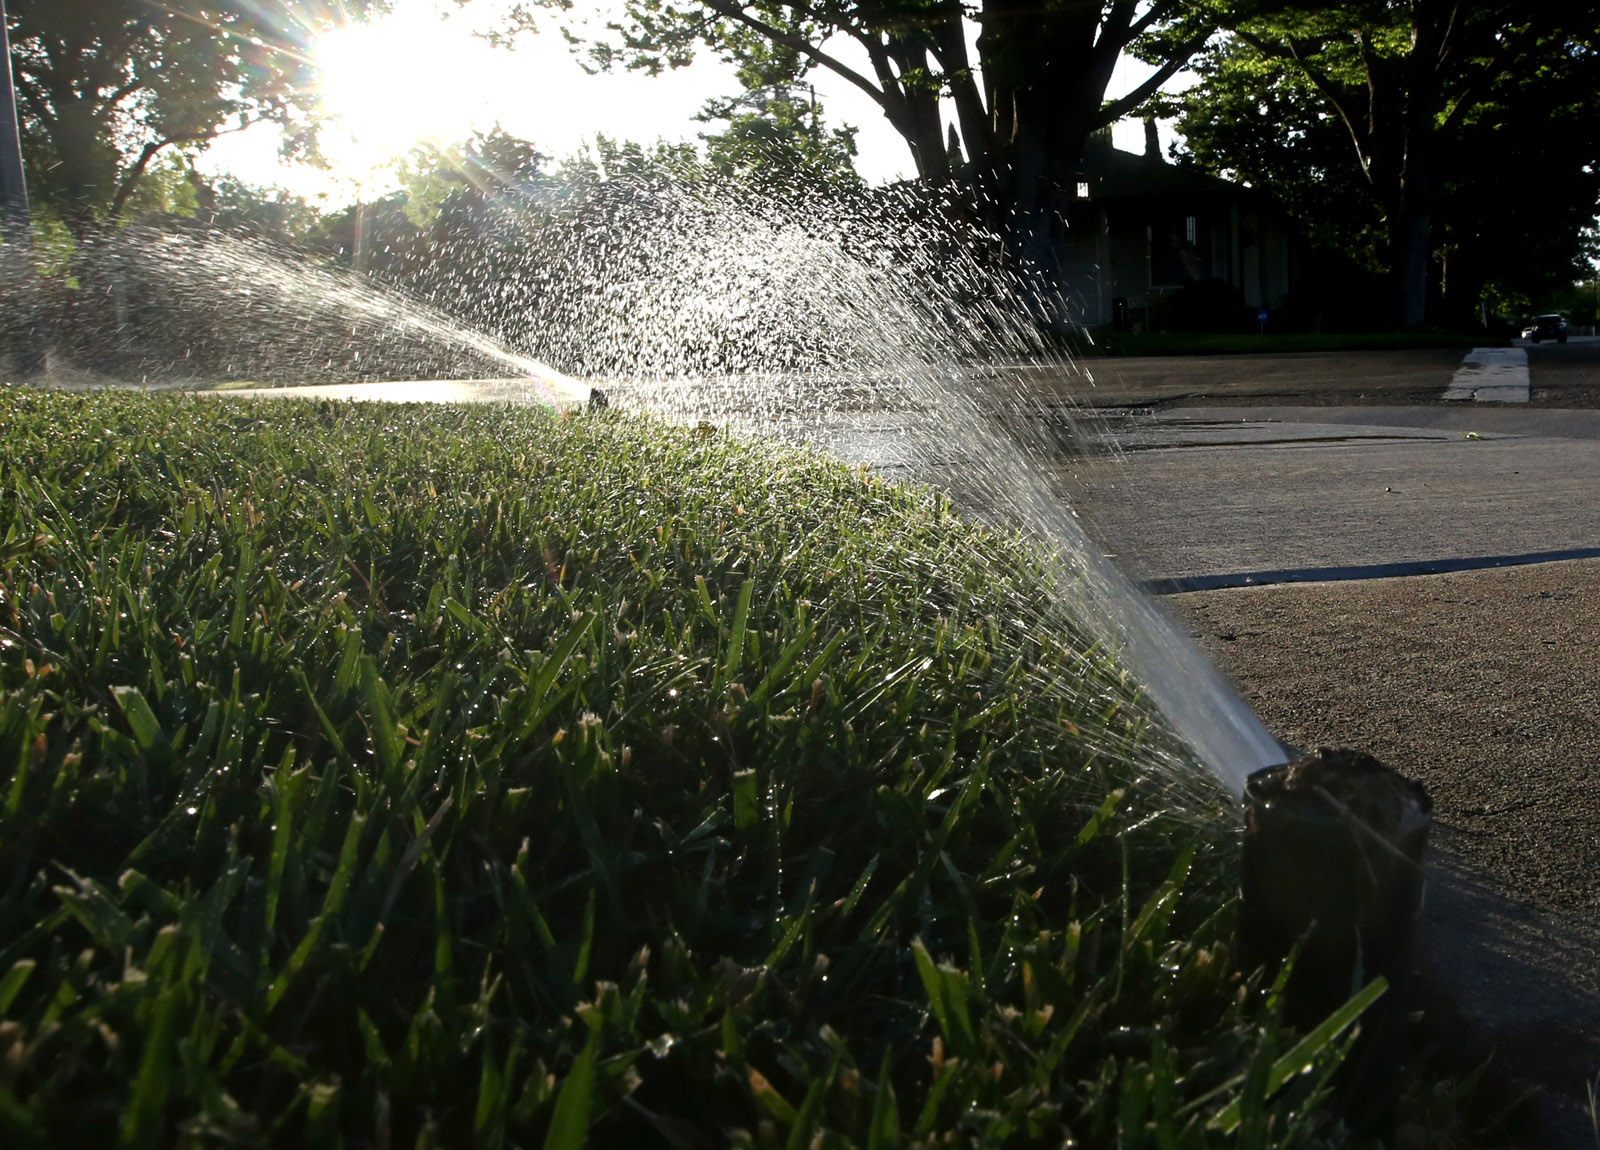 Staying hydrated: How to take care of your lawn, plants in blazing temps